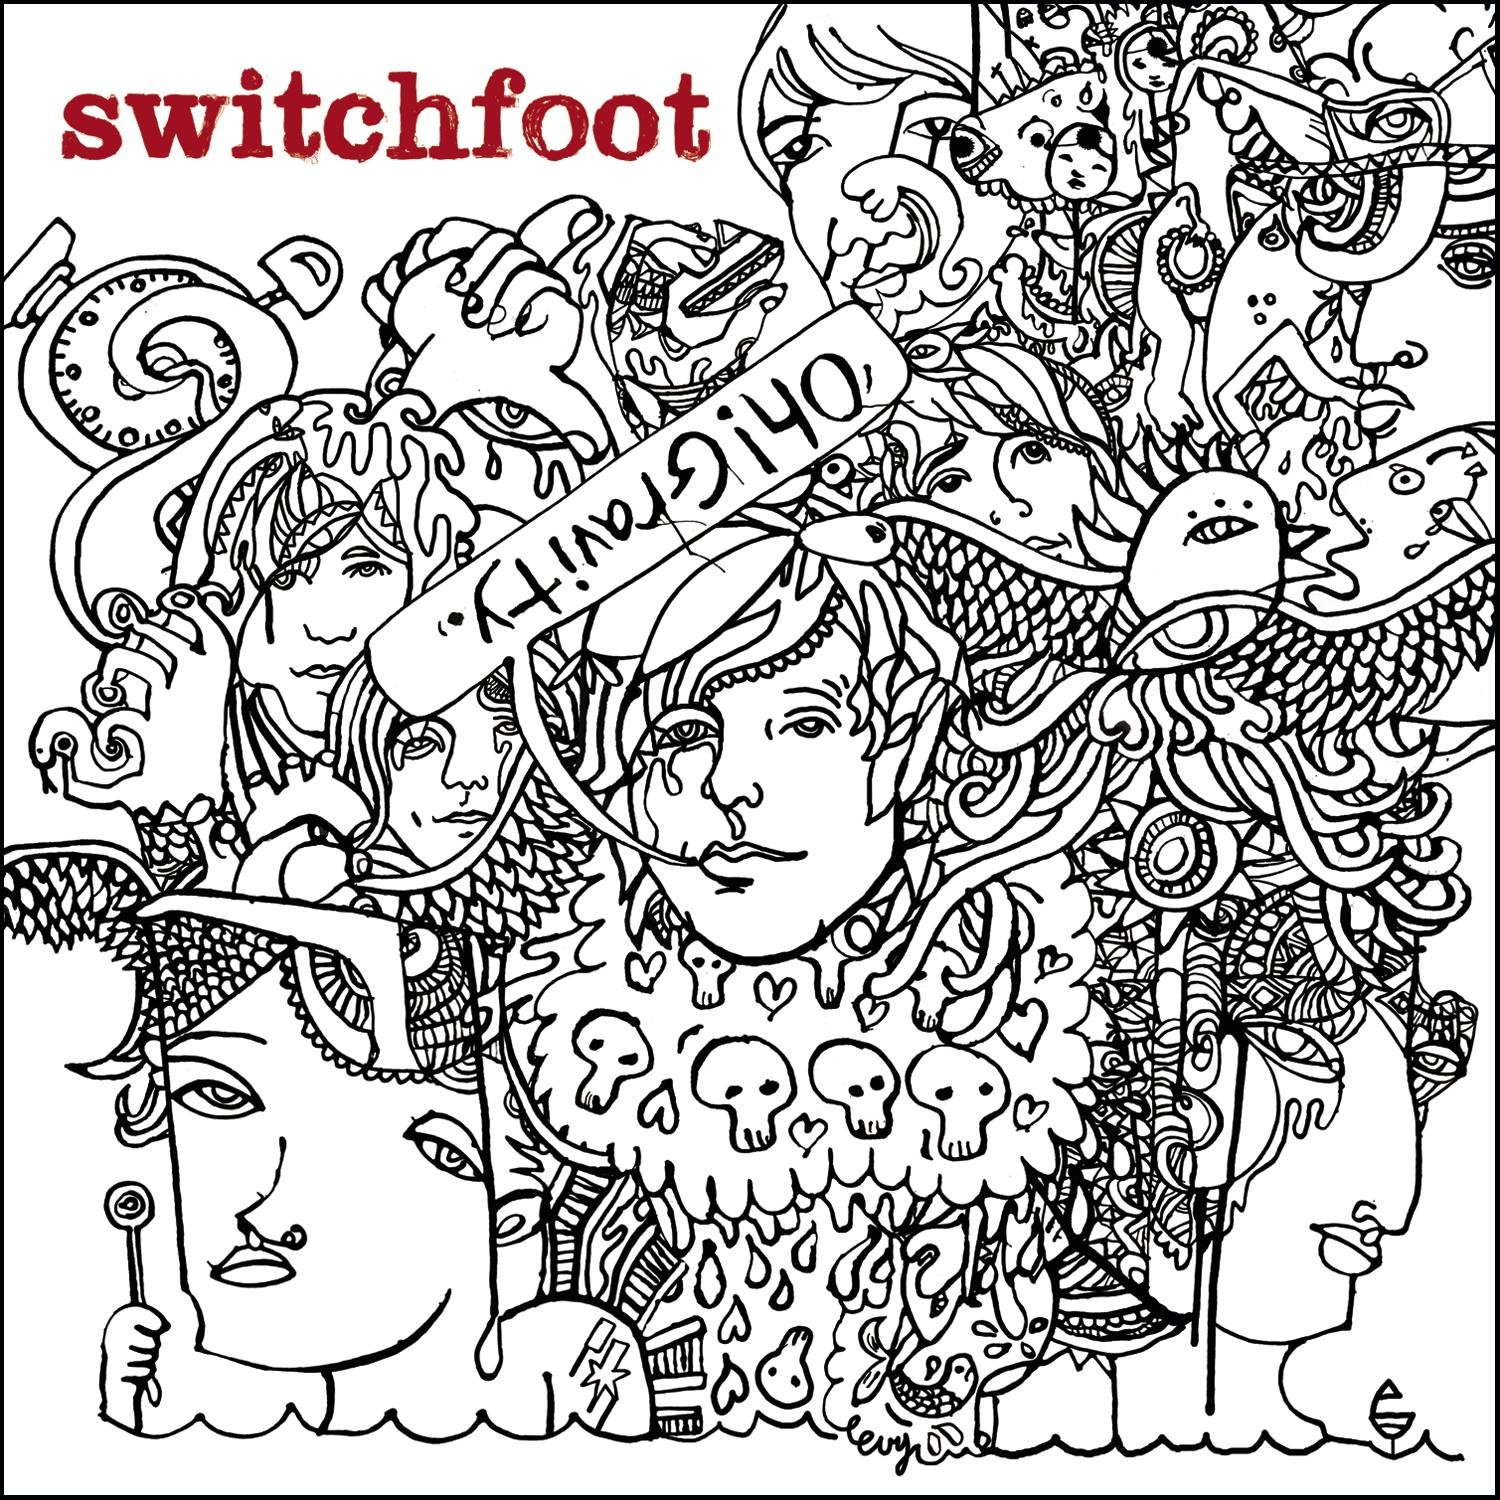 Switchfoot - Oh! Gravity. (2006) [FLAC] Download